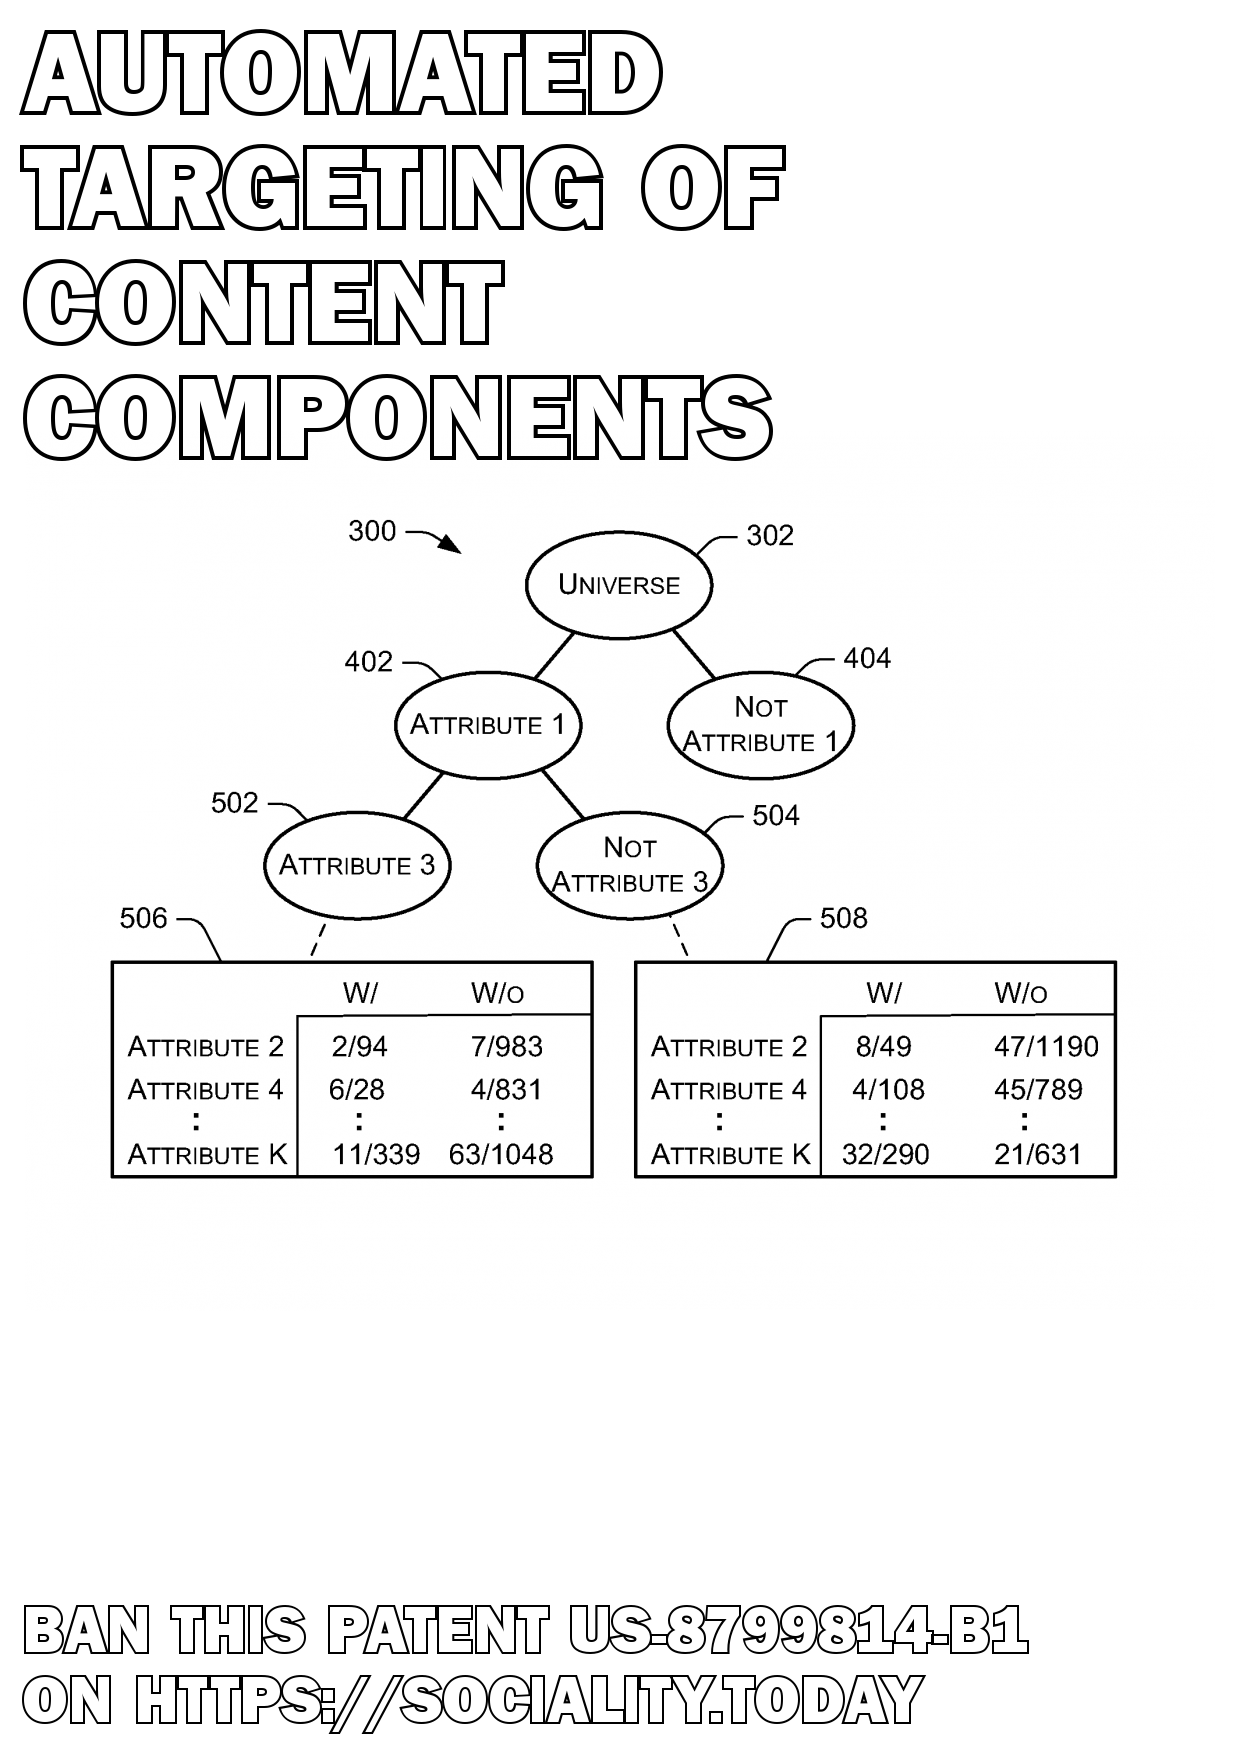 Automated targeting of content components  - US-8799814-B1